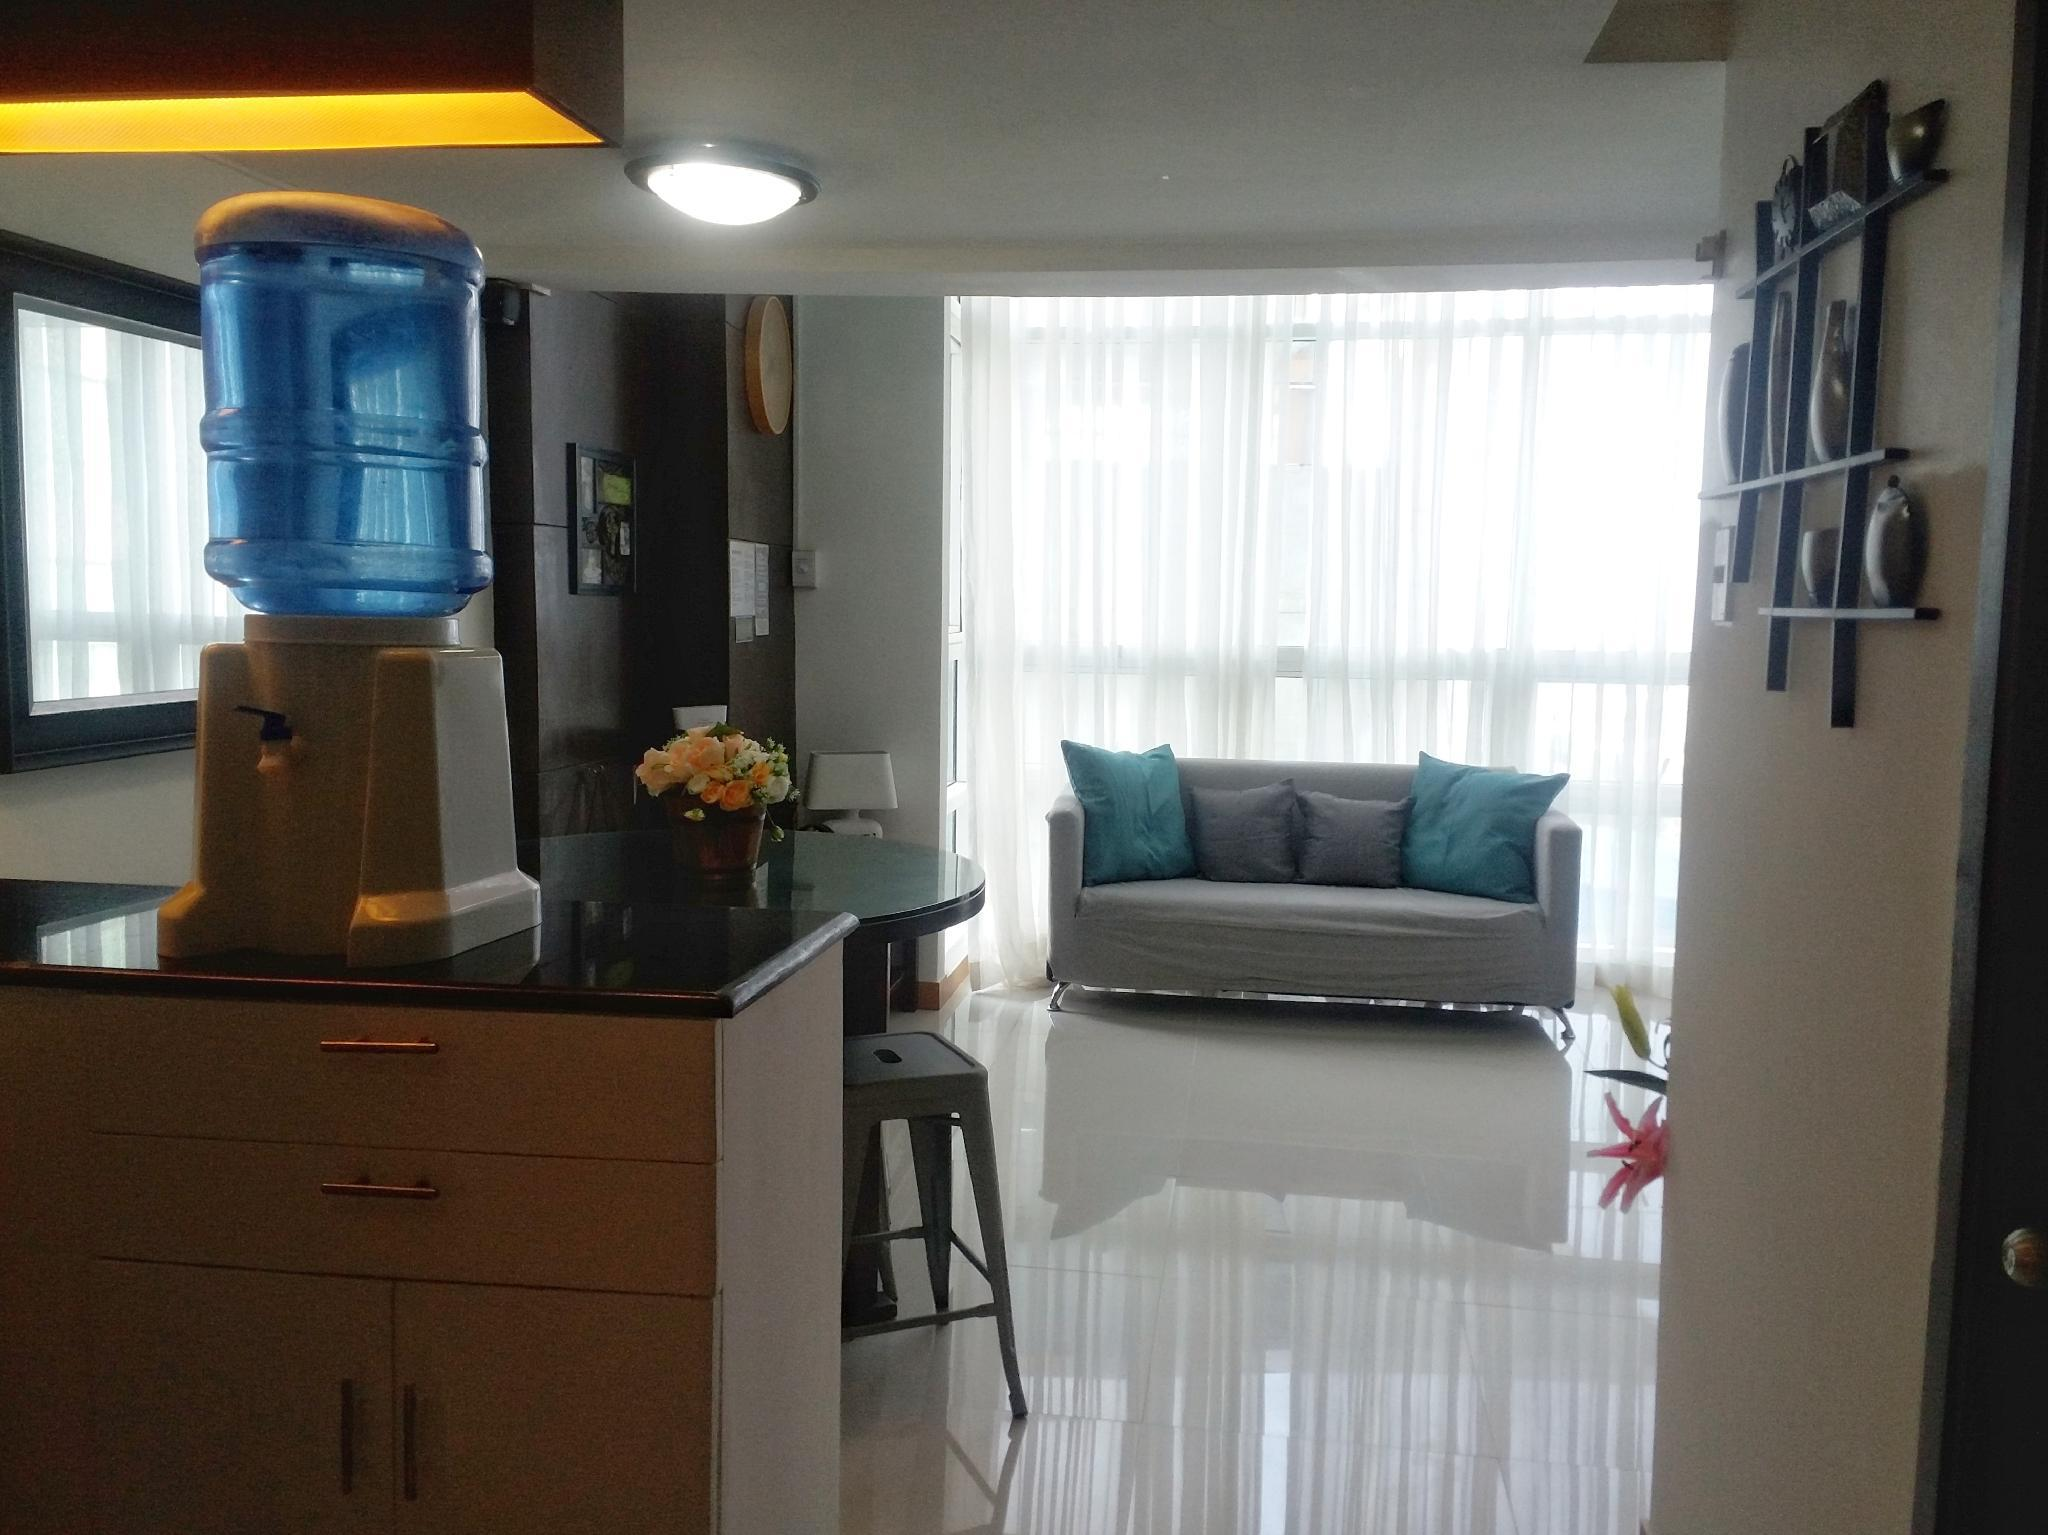 1 Quarto Loft (1 Bedroom Loft)